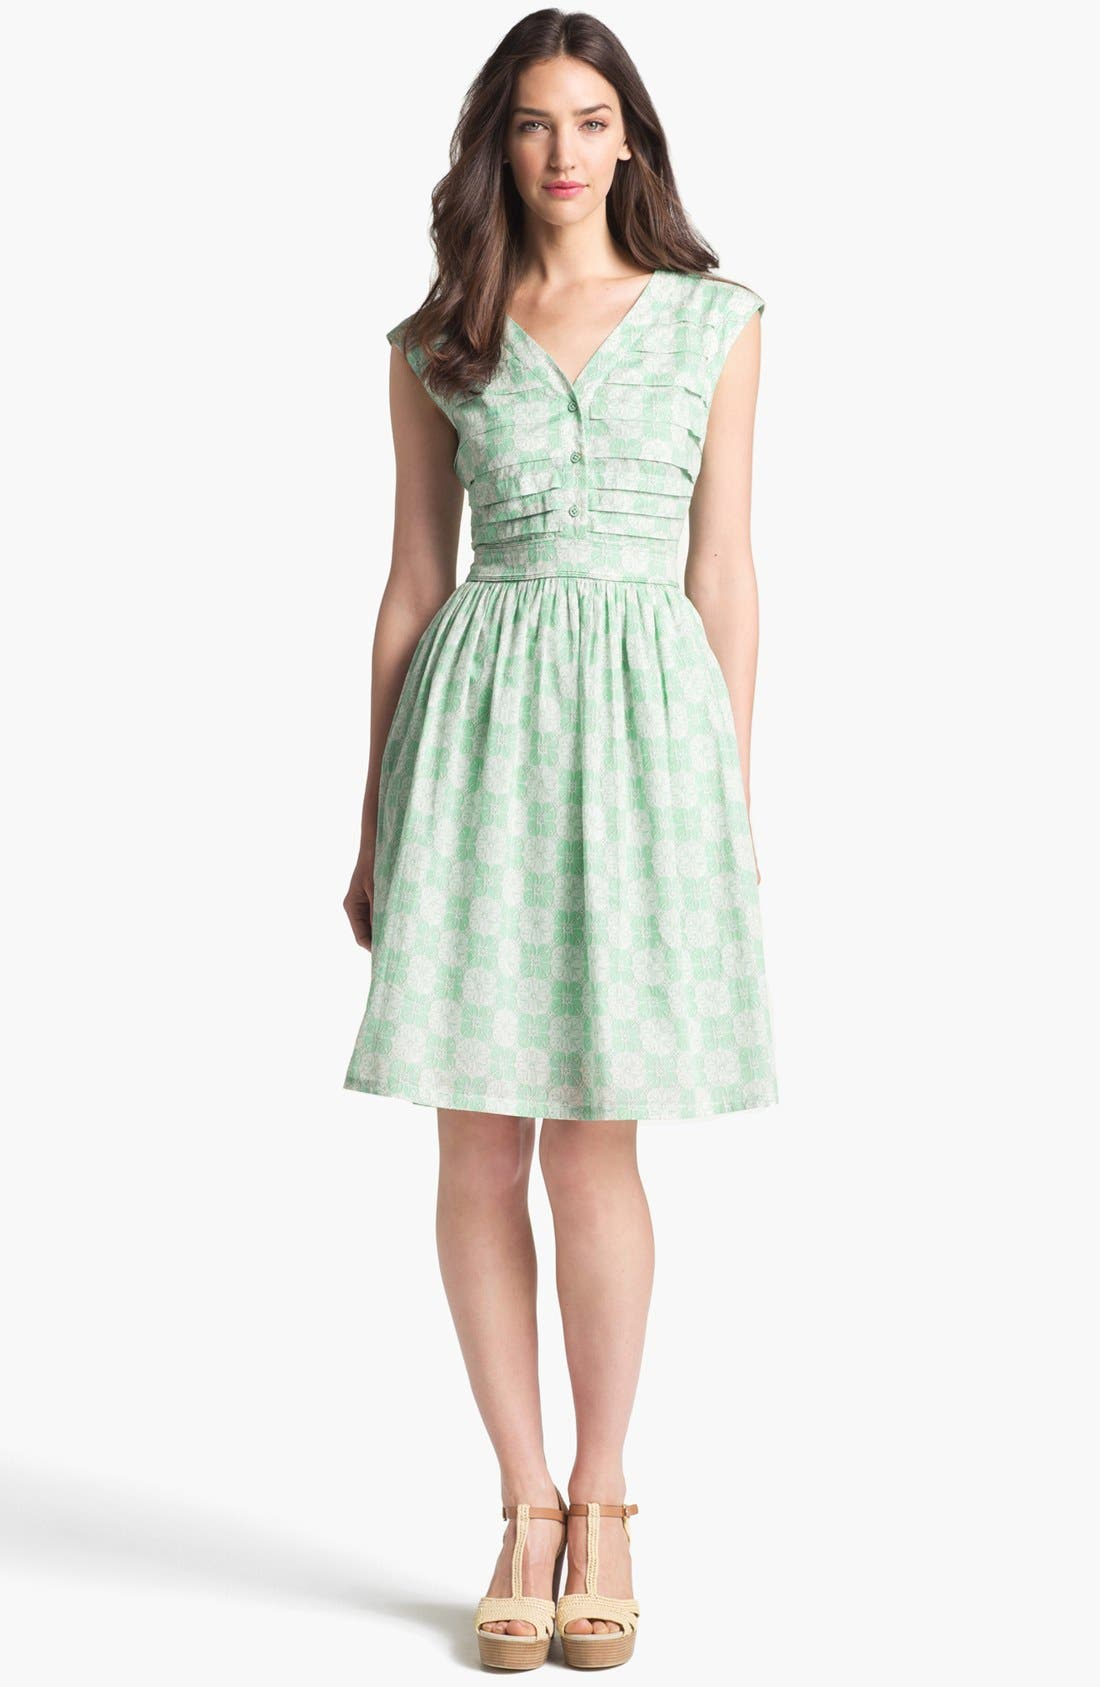 Alternate Image 1 Selected - Tory Burch 'Nico' Cotton Fit & Flare Dress